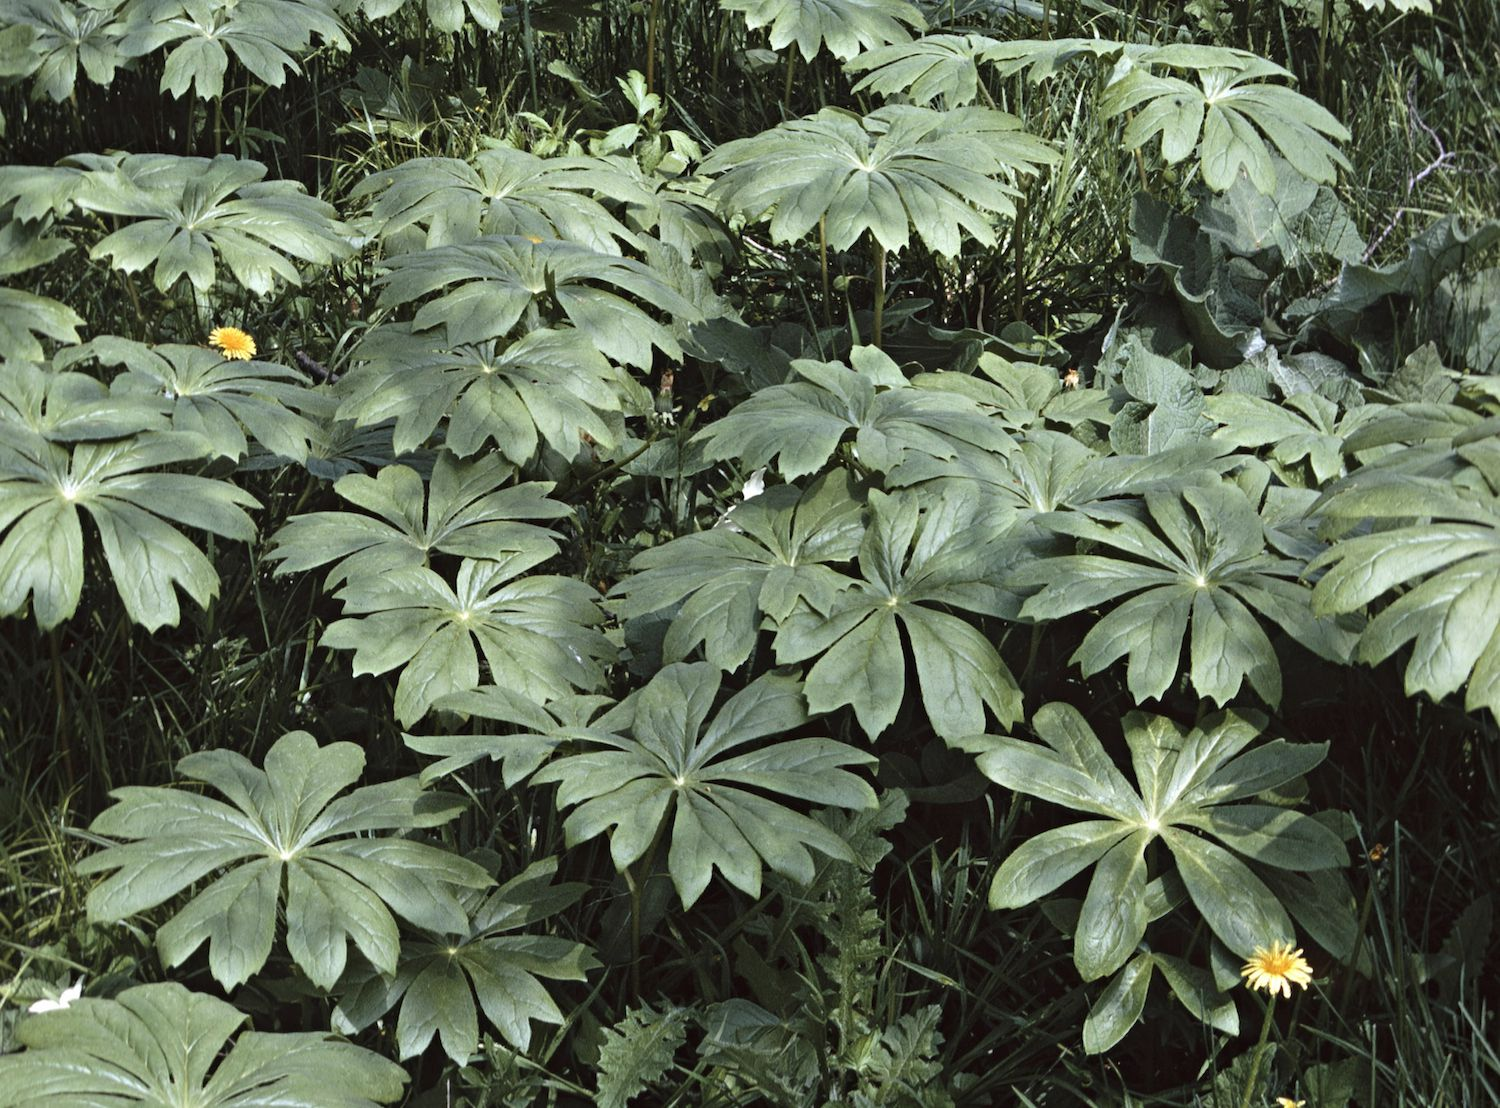 Mayapple Poisonous But Striking Shade Plant